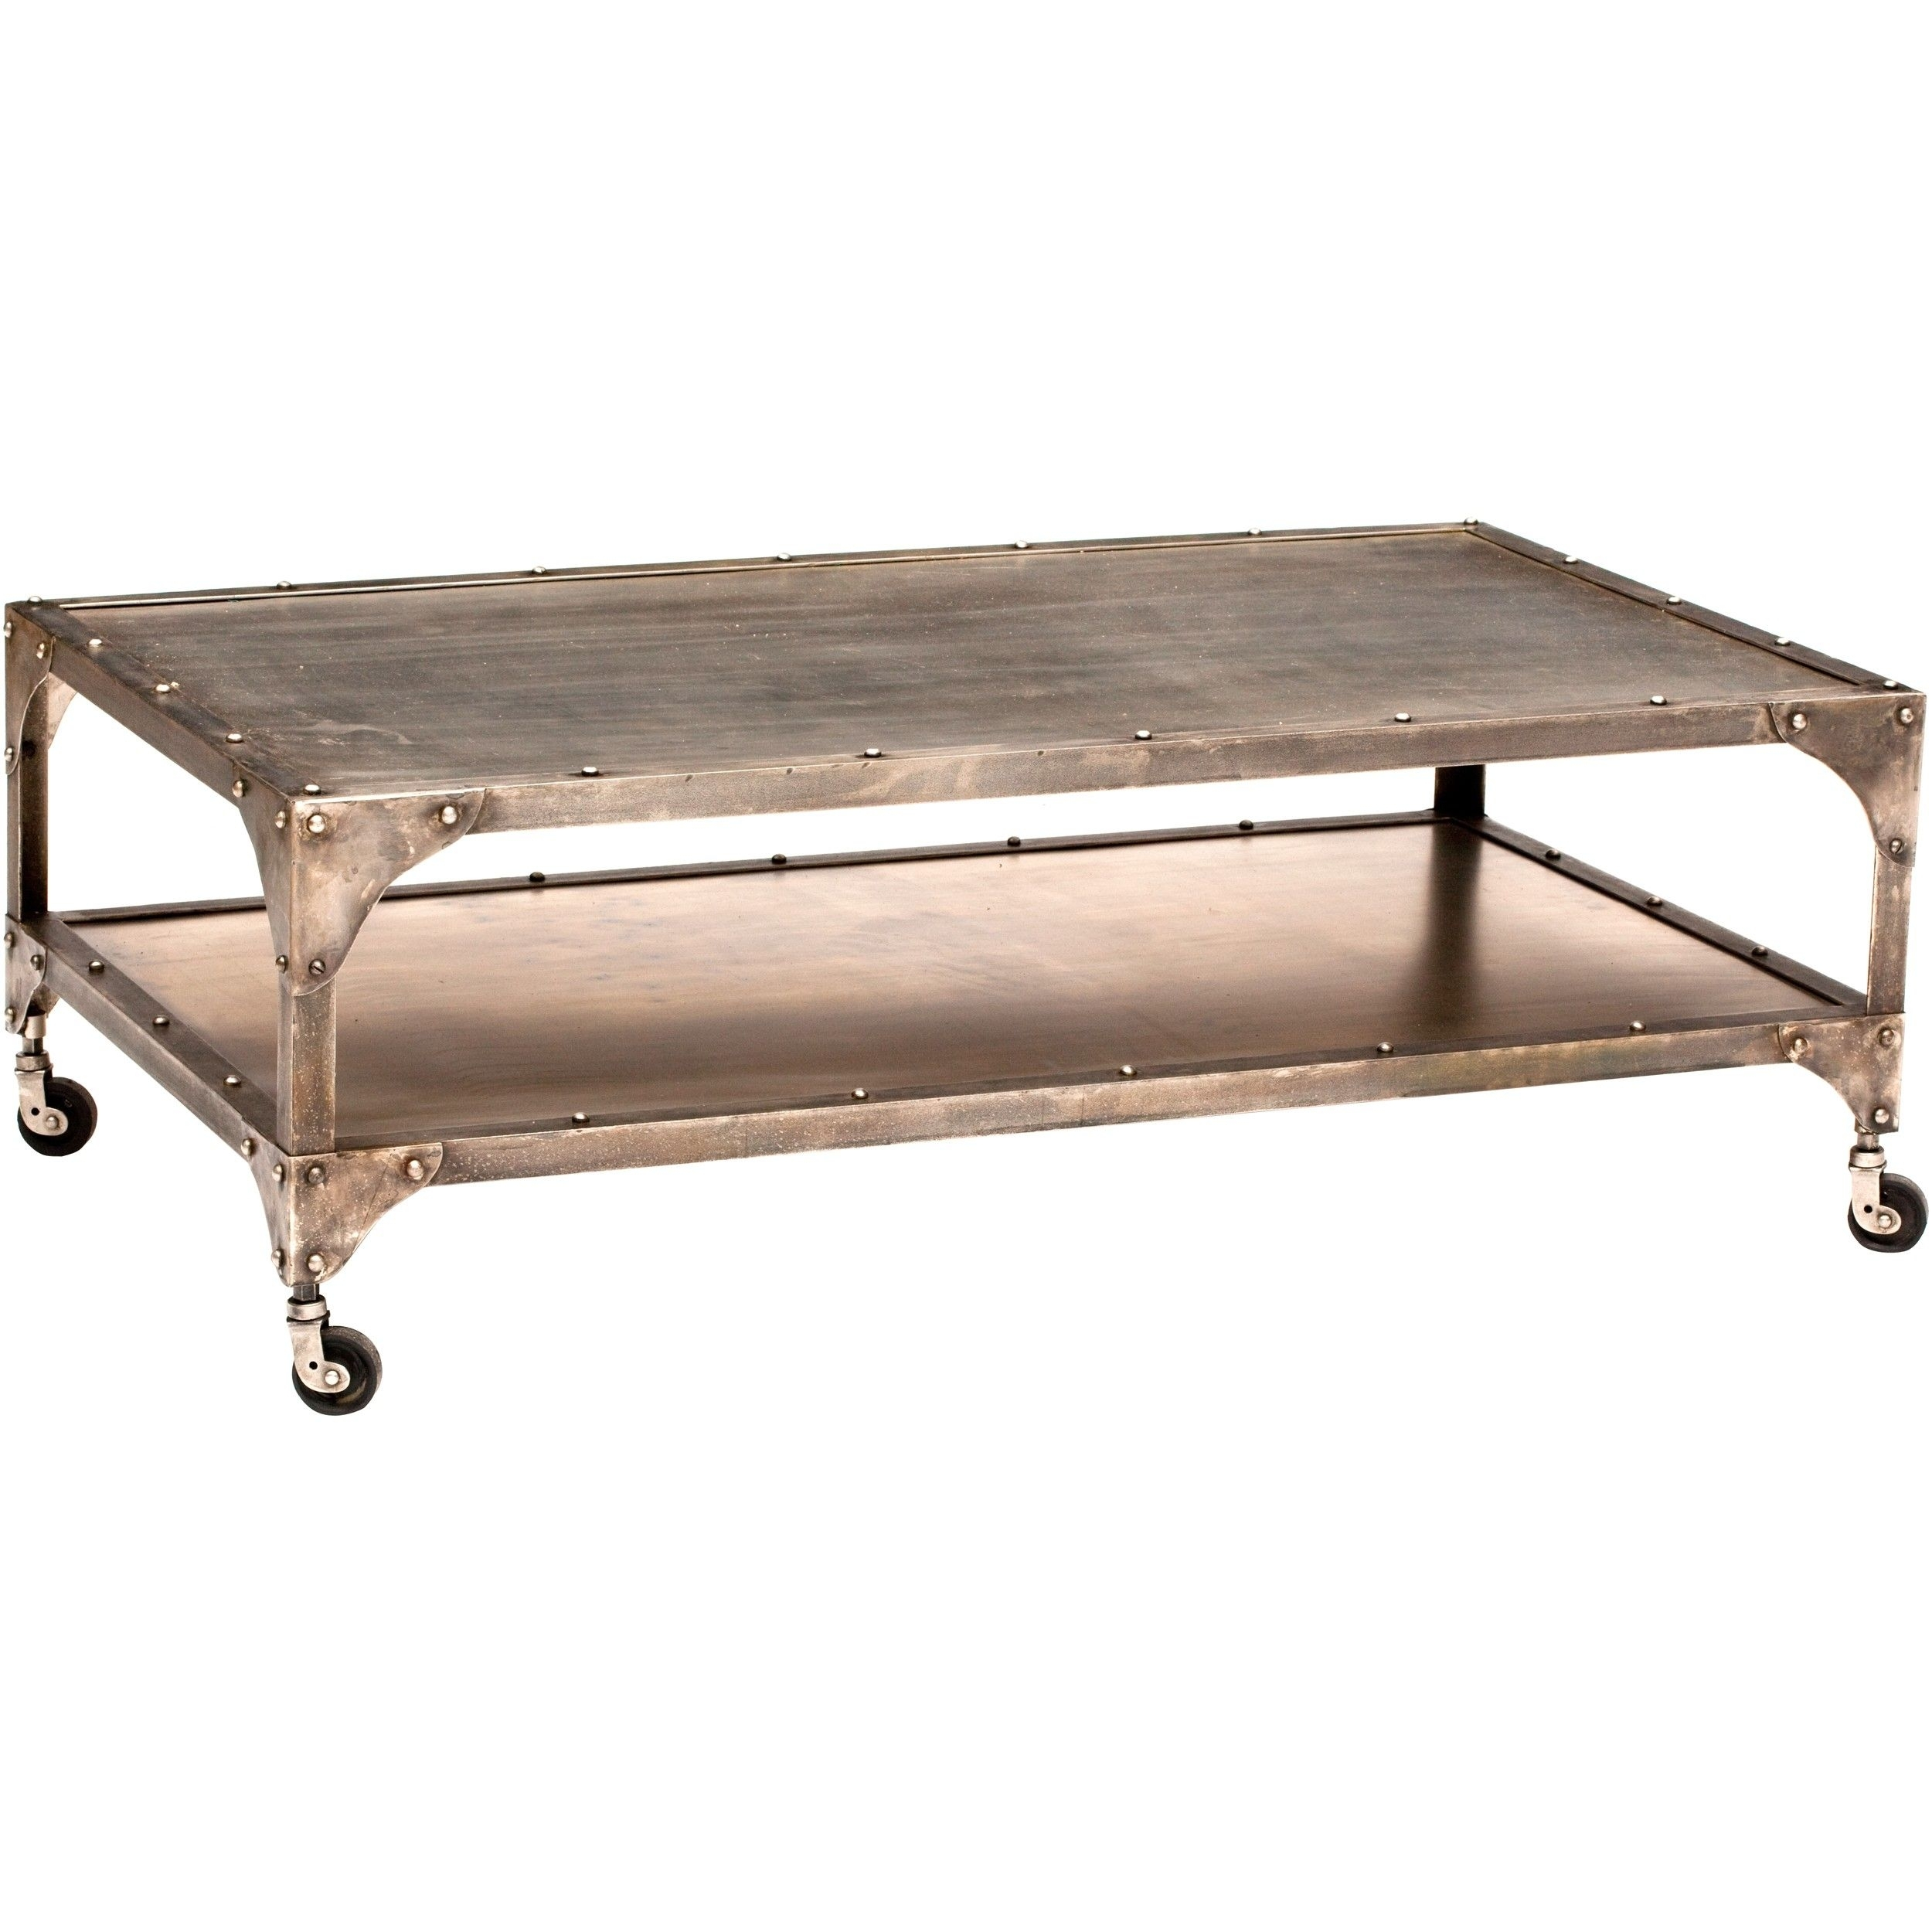 Element Coffee Table - Furniture - Accent Tables - Coffee Tables pertaining to Element Coffee Tables (Image 19 of 30)